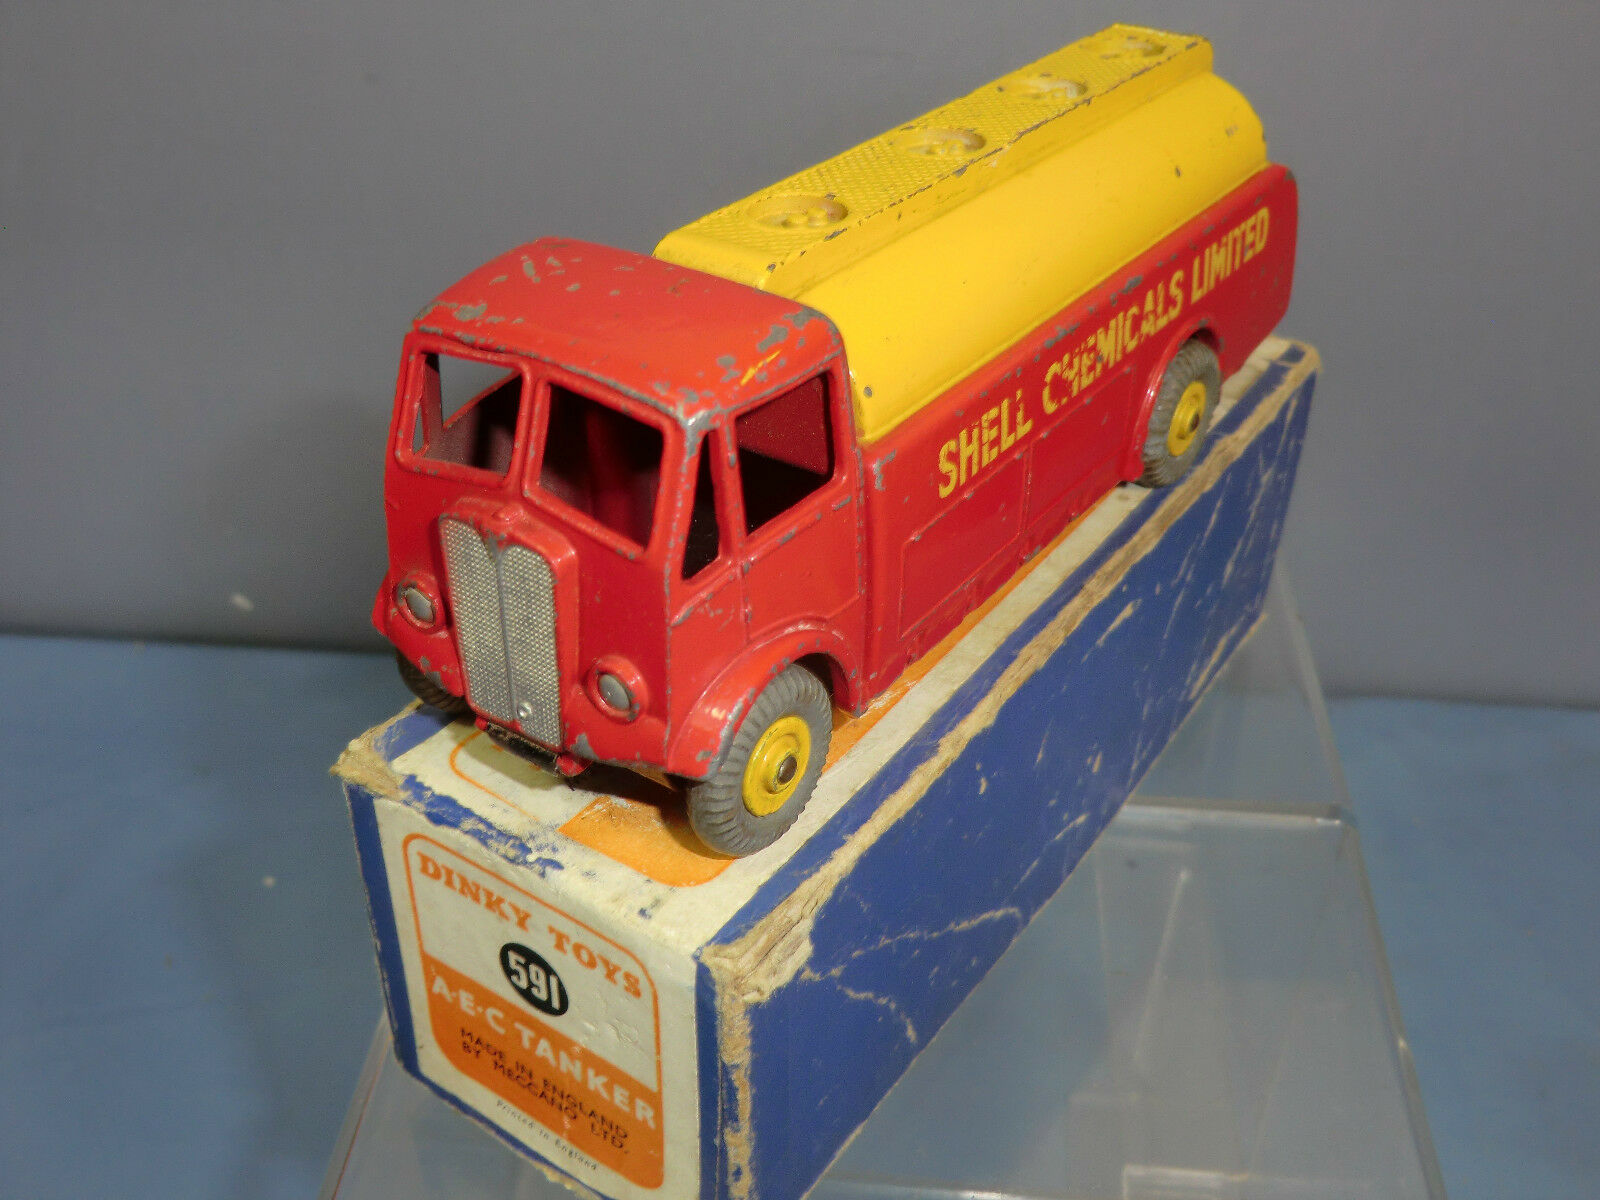 DINKY SpielzeugS Modelll No.591 A.E.C TANKER  SHELL CHEMICAL   VN MIB